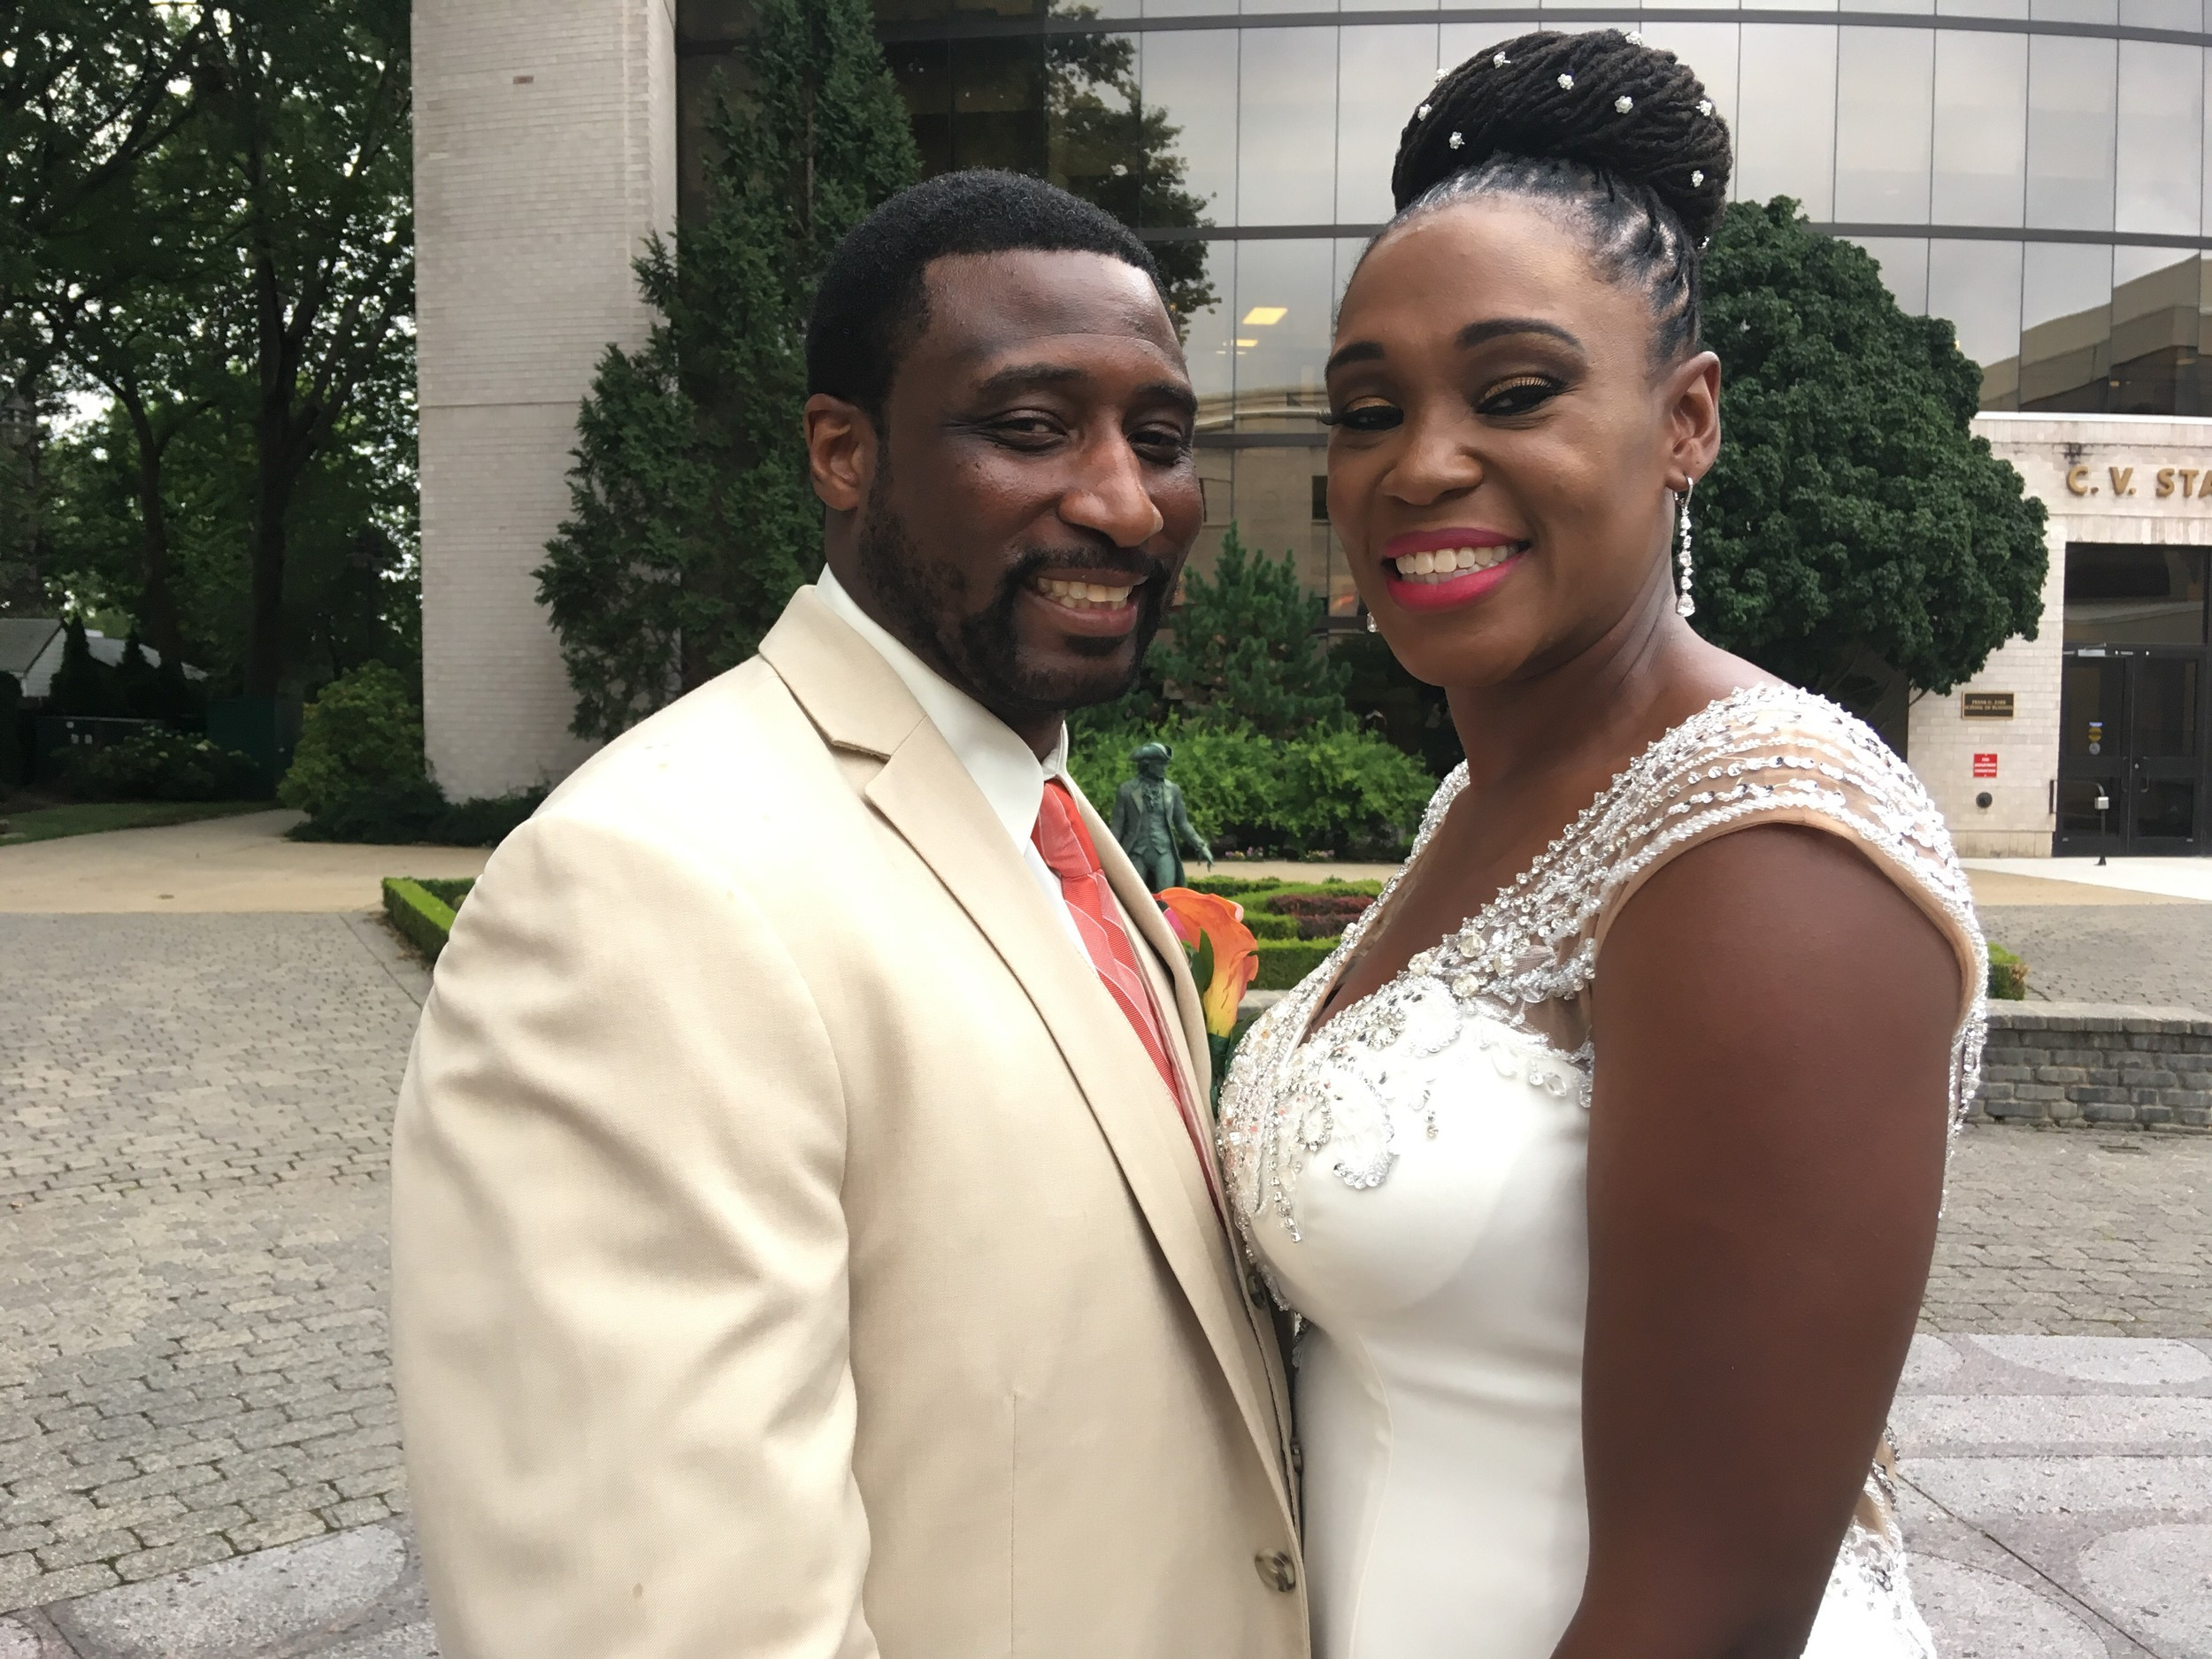 The newlyweds, Yolanda Biggs and Sean Stallings, remained friends for a while before they realized they were in love and about three years later, they got married at Union Baptist Church in Hempstead.